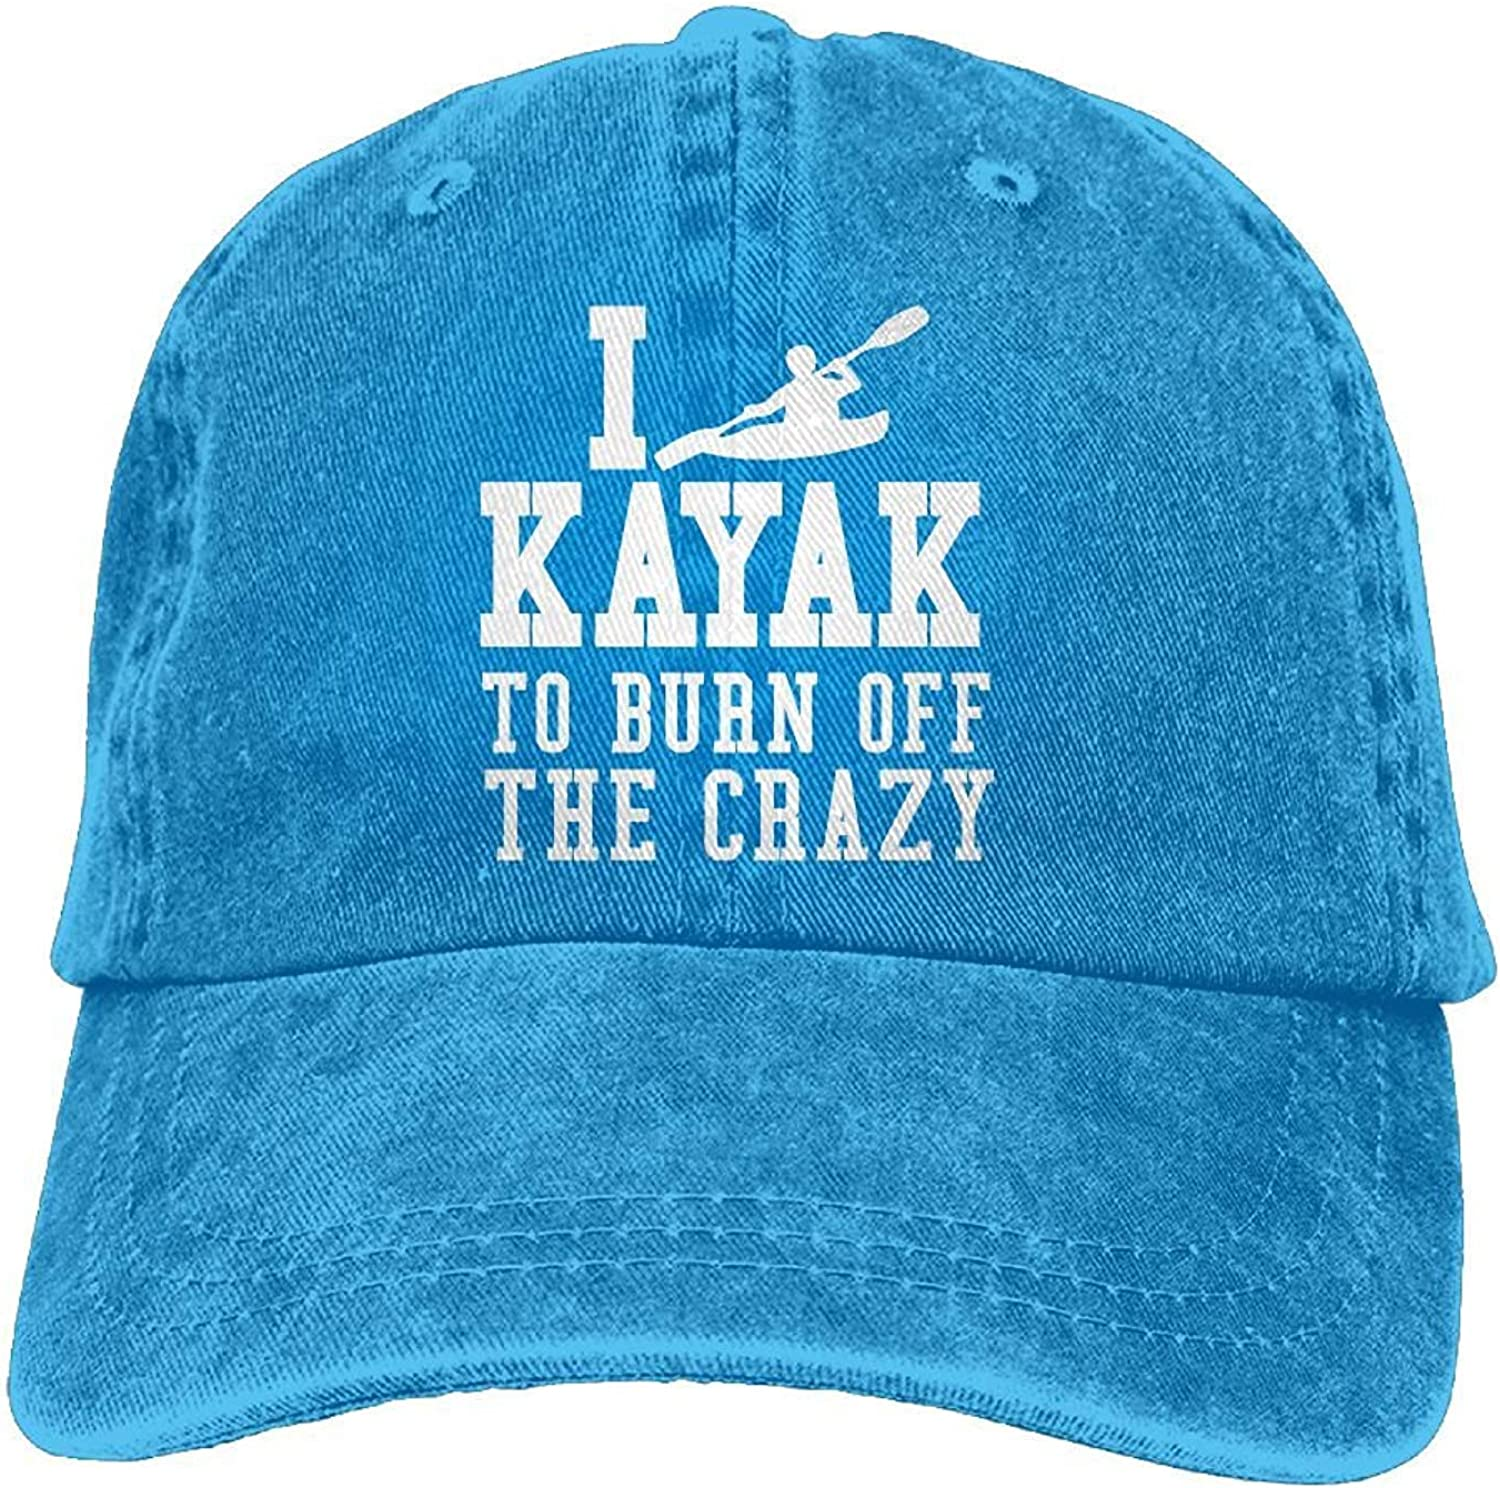 I Kayak to Burn Off The Crazy Vintage Jeans Baseball Cap for Men and Women W554496